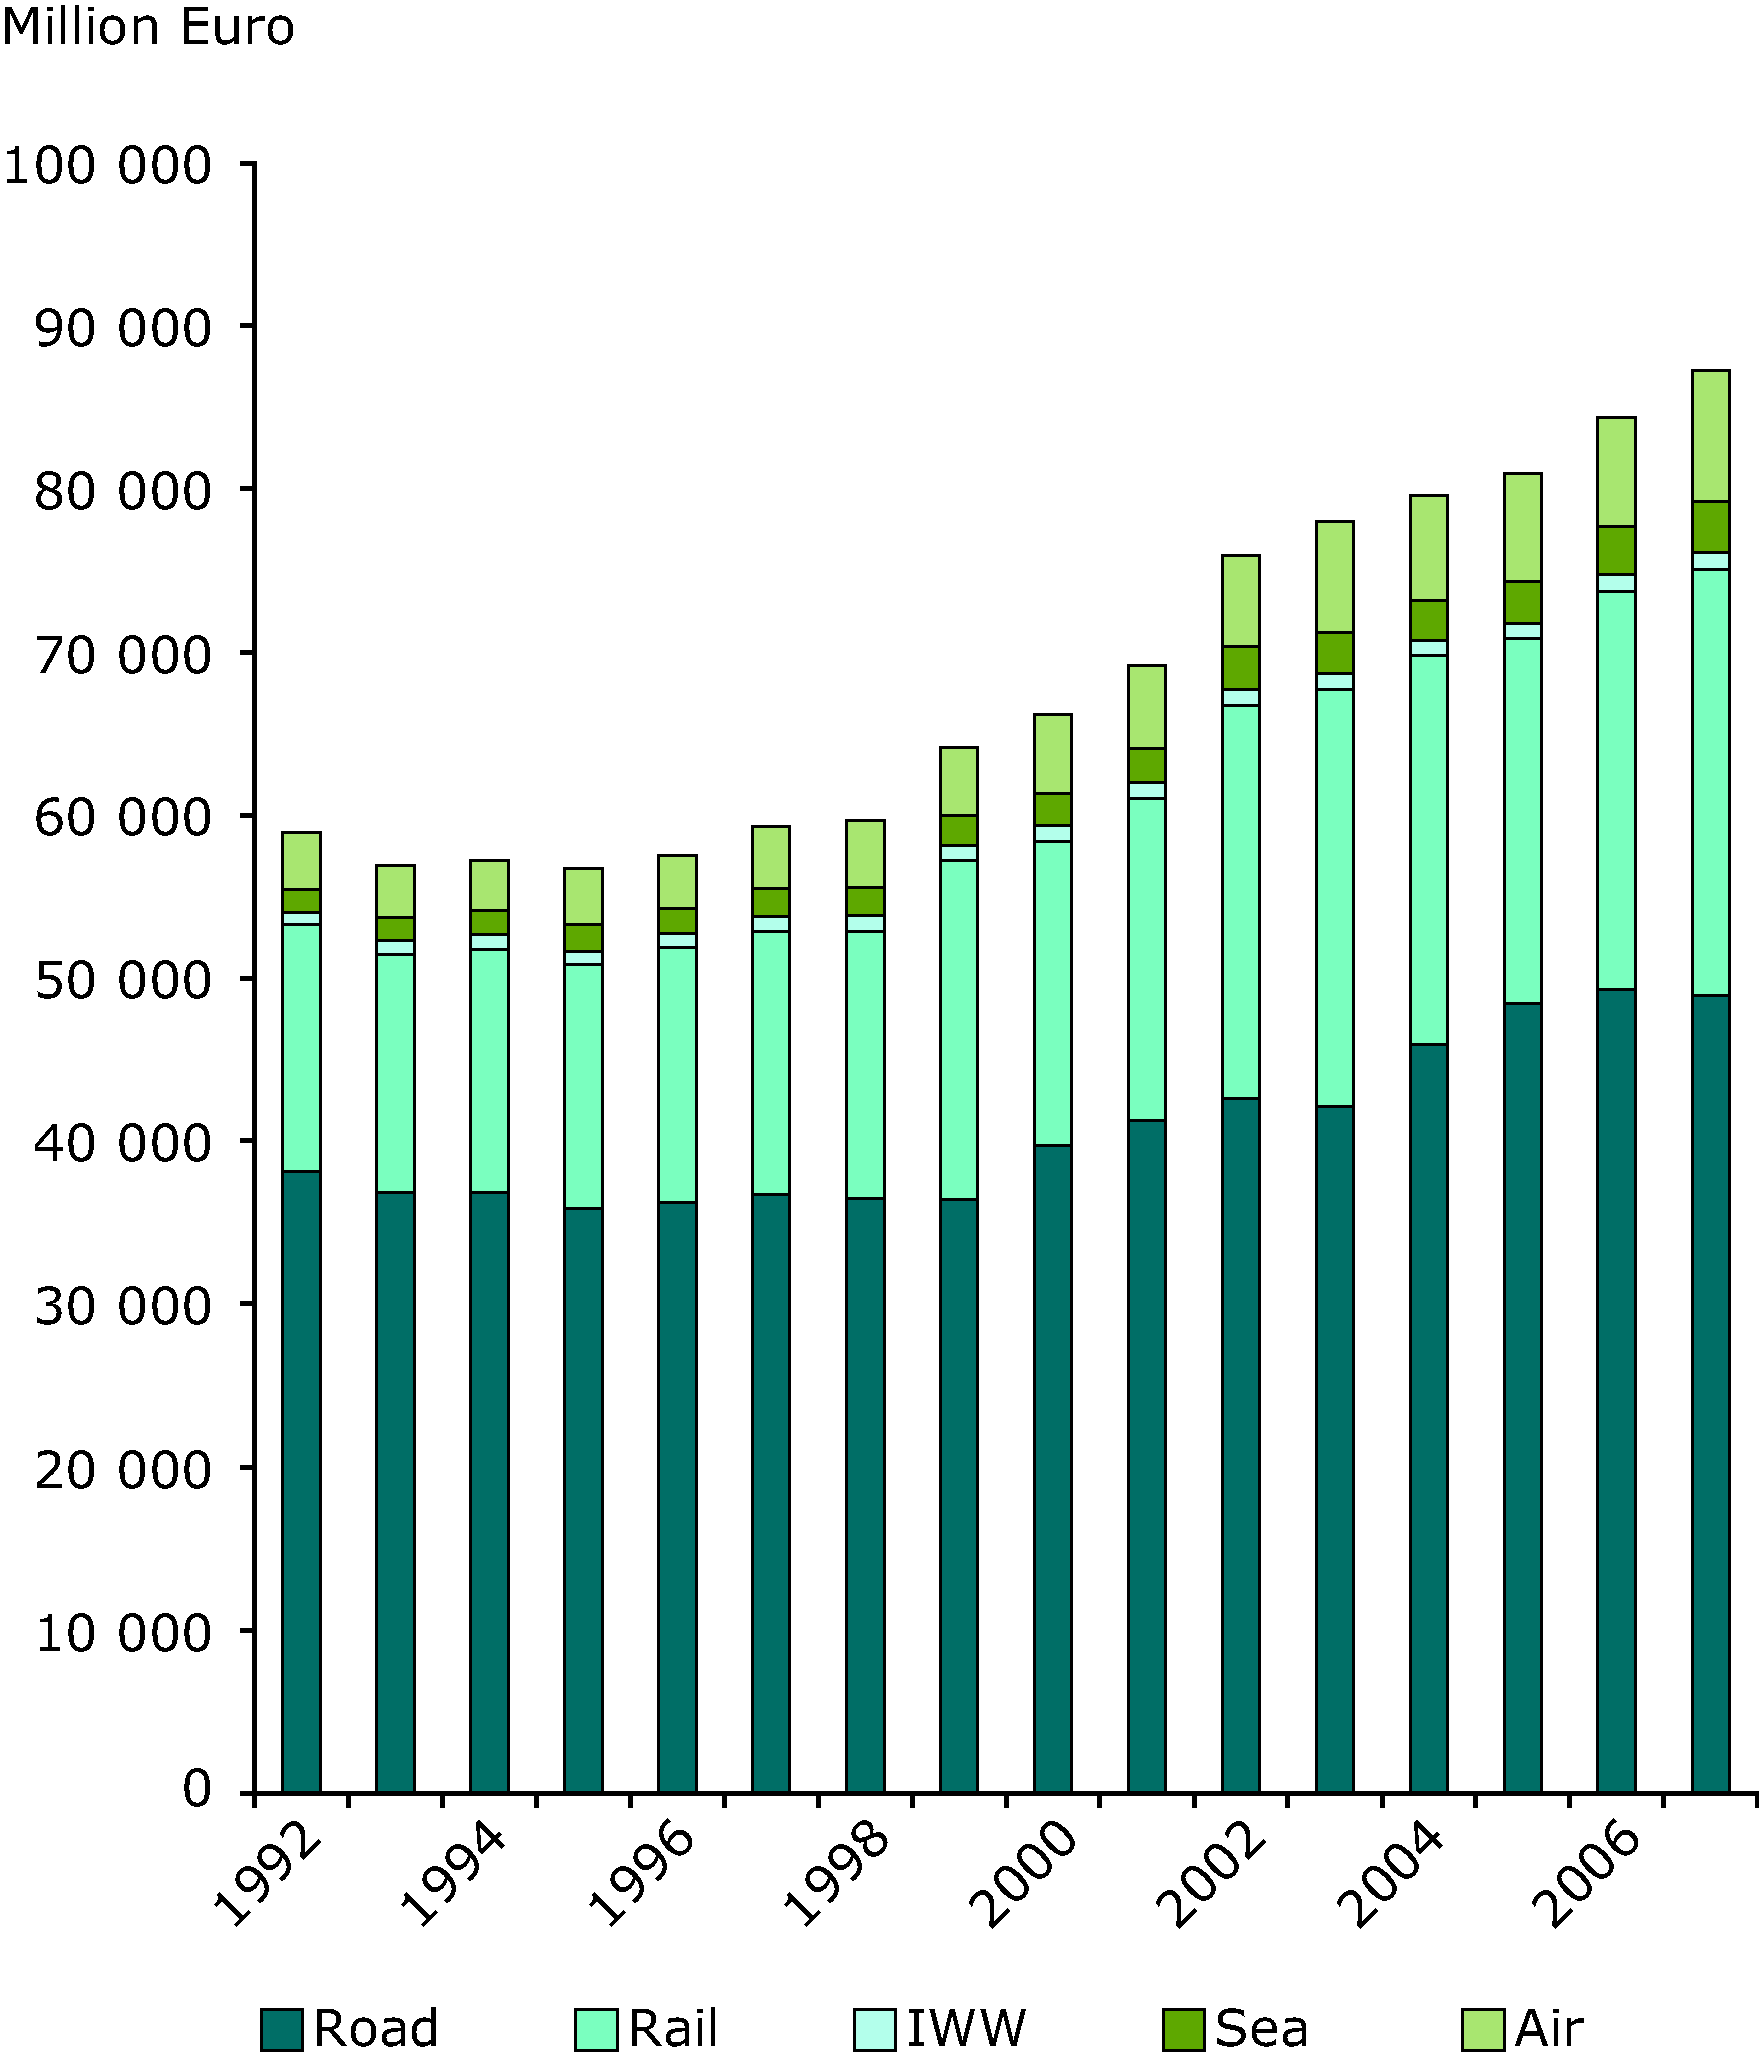 Investment in transport infrastructure (million Euro) in EEA member countries